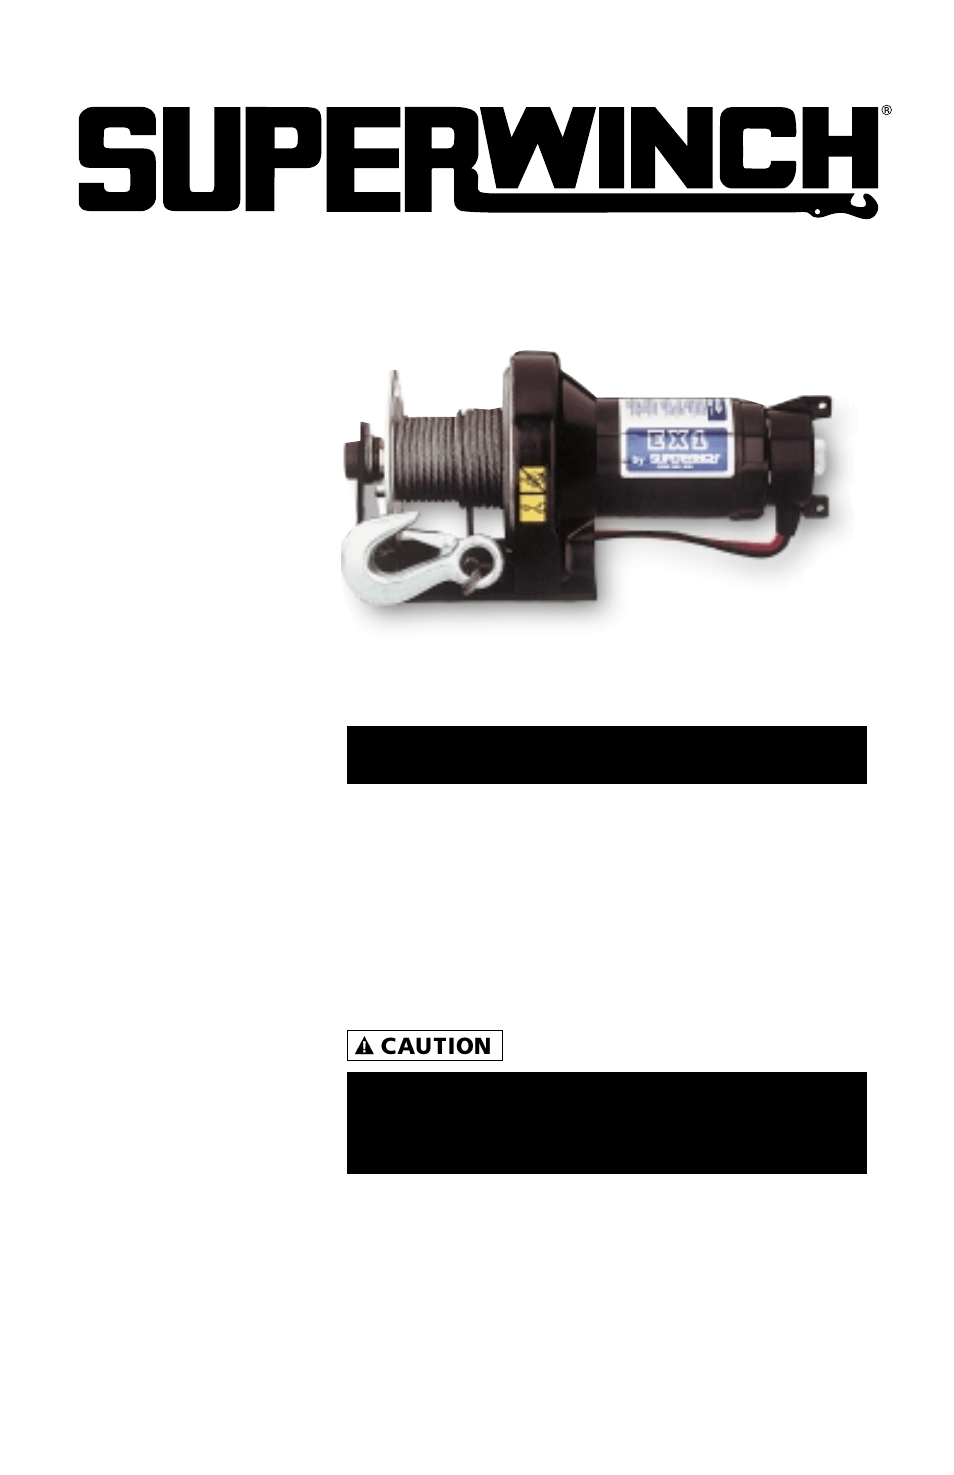 medium resolution of superwinch ex1 453 kgs 12v 1110 user manual 48 pages rh manualsdir com at